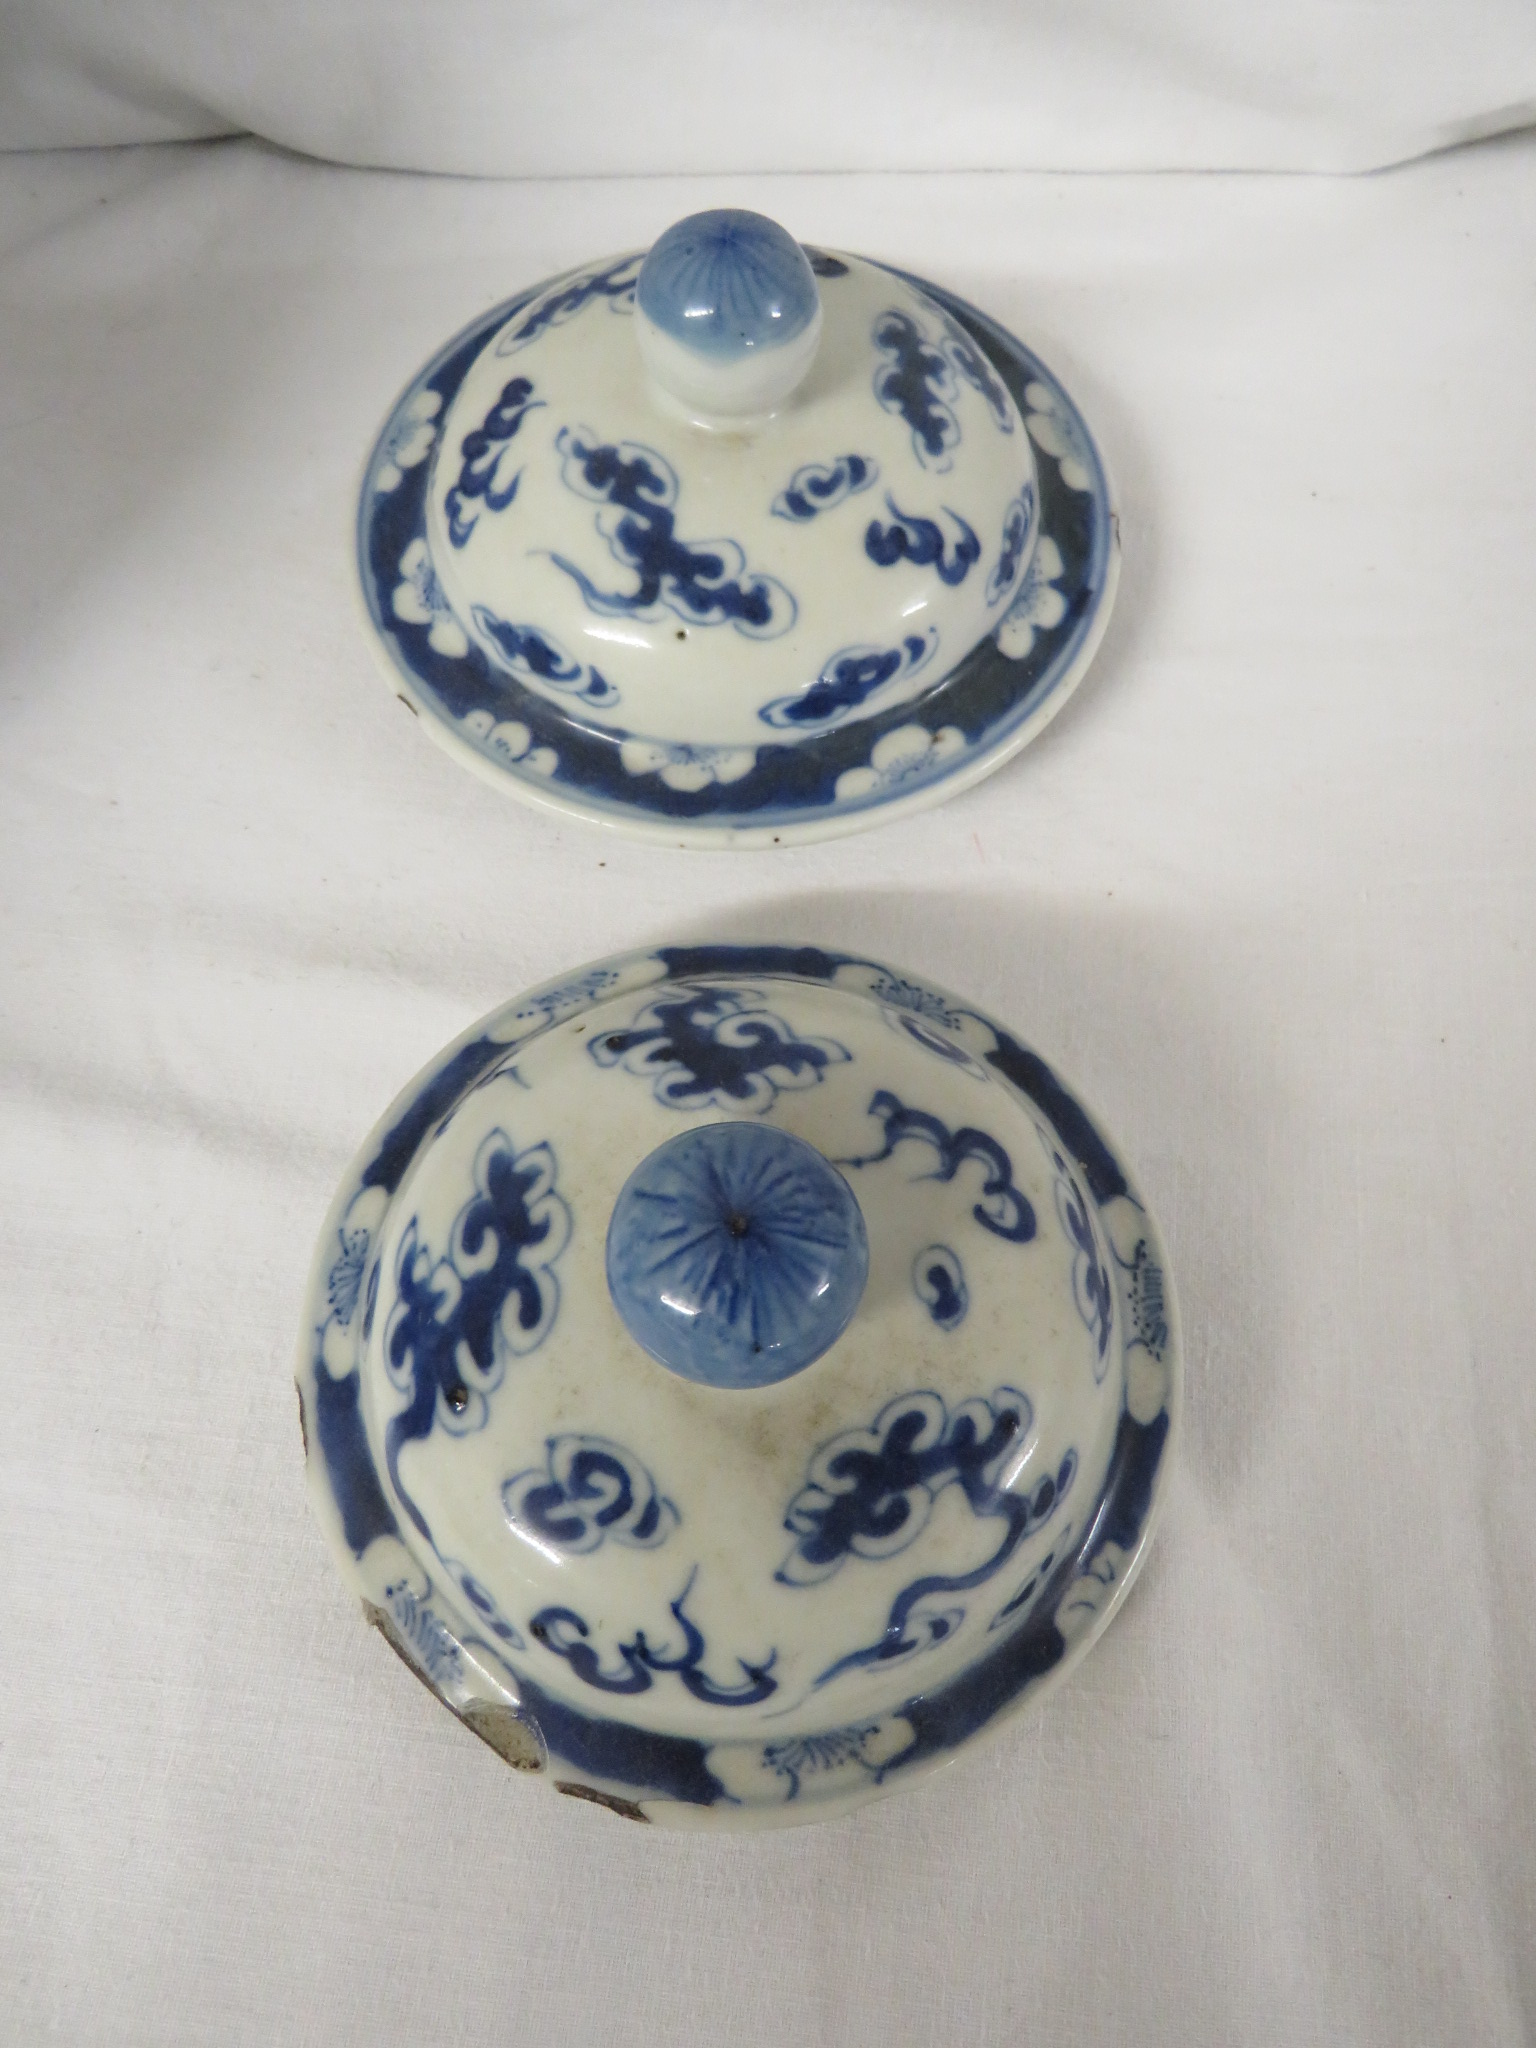 Lot 46 - A pair of Chinese porcelain gourd shaped jars, decorated in underglaze blue with an opposed pair